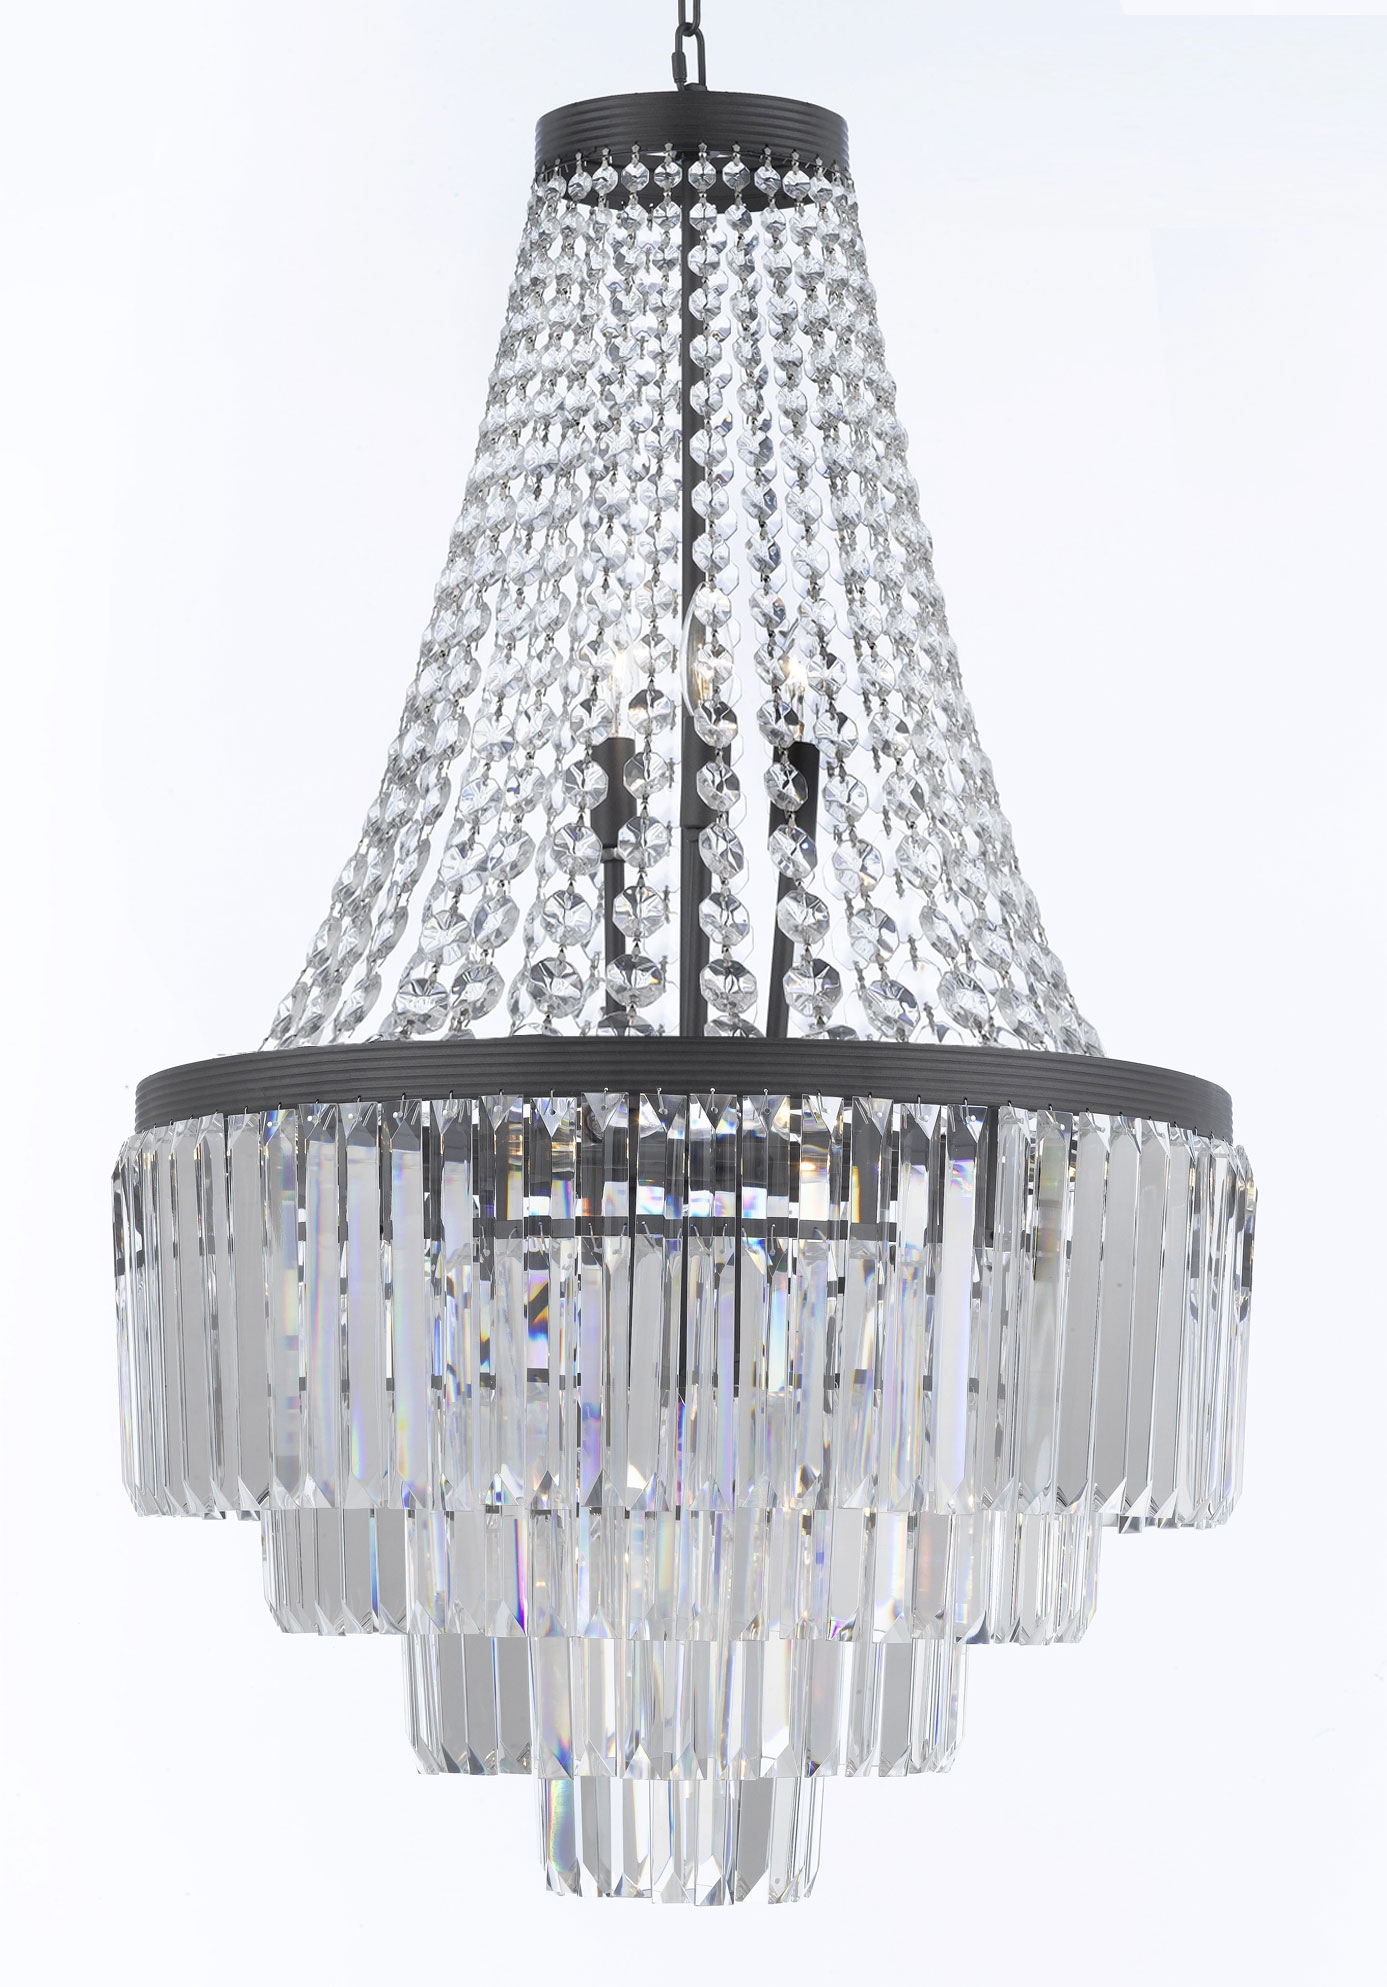 G7 11009 Gallery Chandeliers Retro Odeon Crystal Glass Fringe 3 Intended For 3 Tier Crystal Chandelier (#6 of 12)